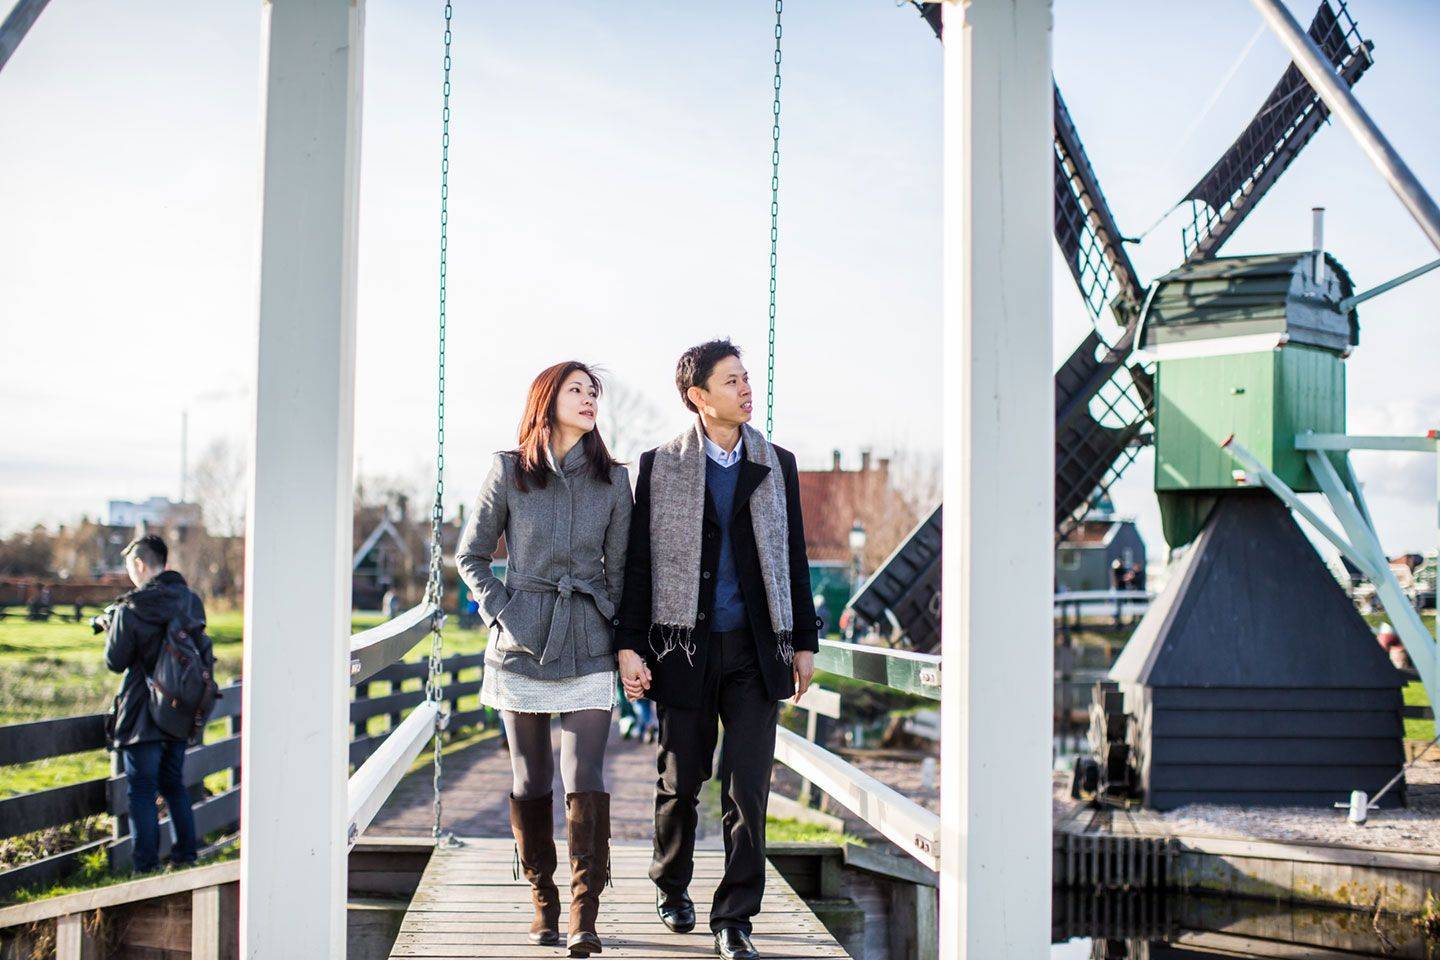 Prewedding photographer in amsterdam holland the netherlands